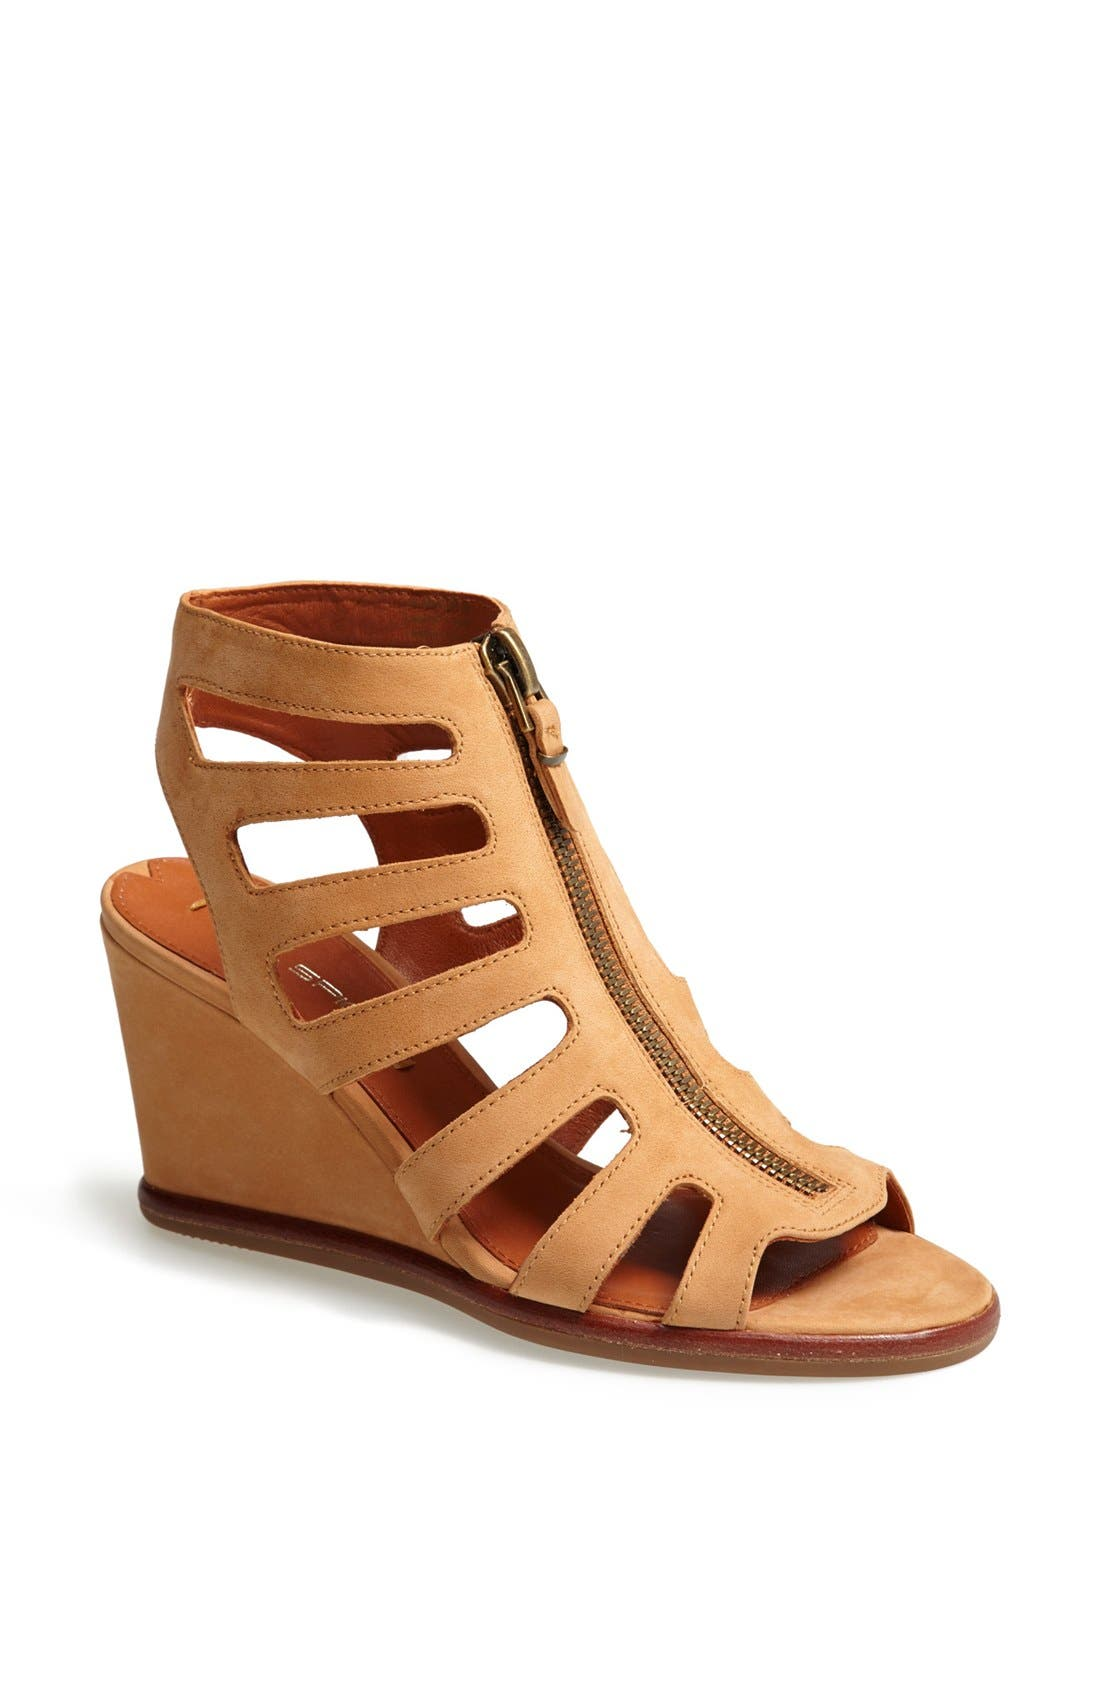 Alternate Image 1 Selected - Via Spiga 'Denisha' Wedge Sandal